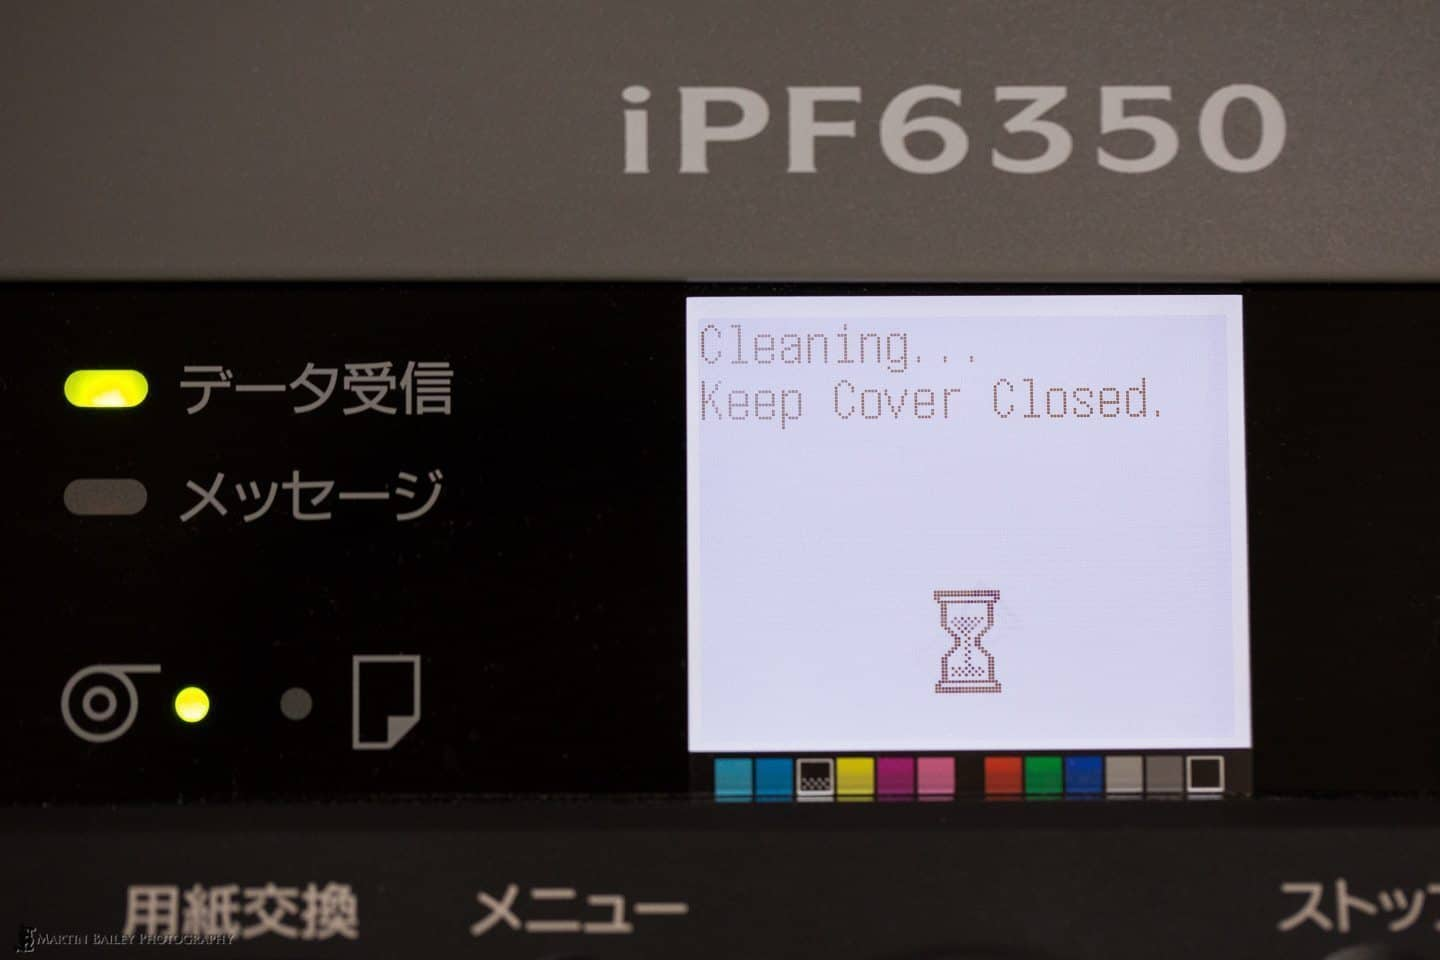 Printer Head Cleaning Message